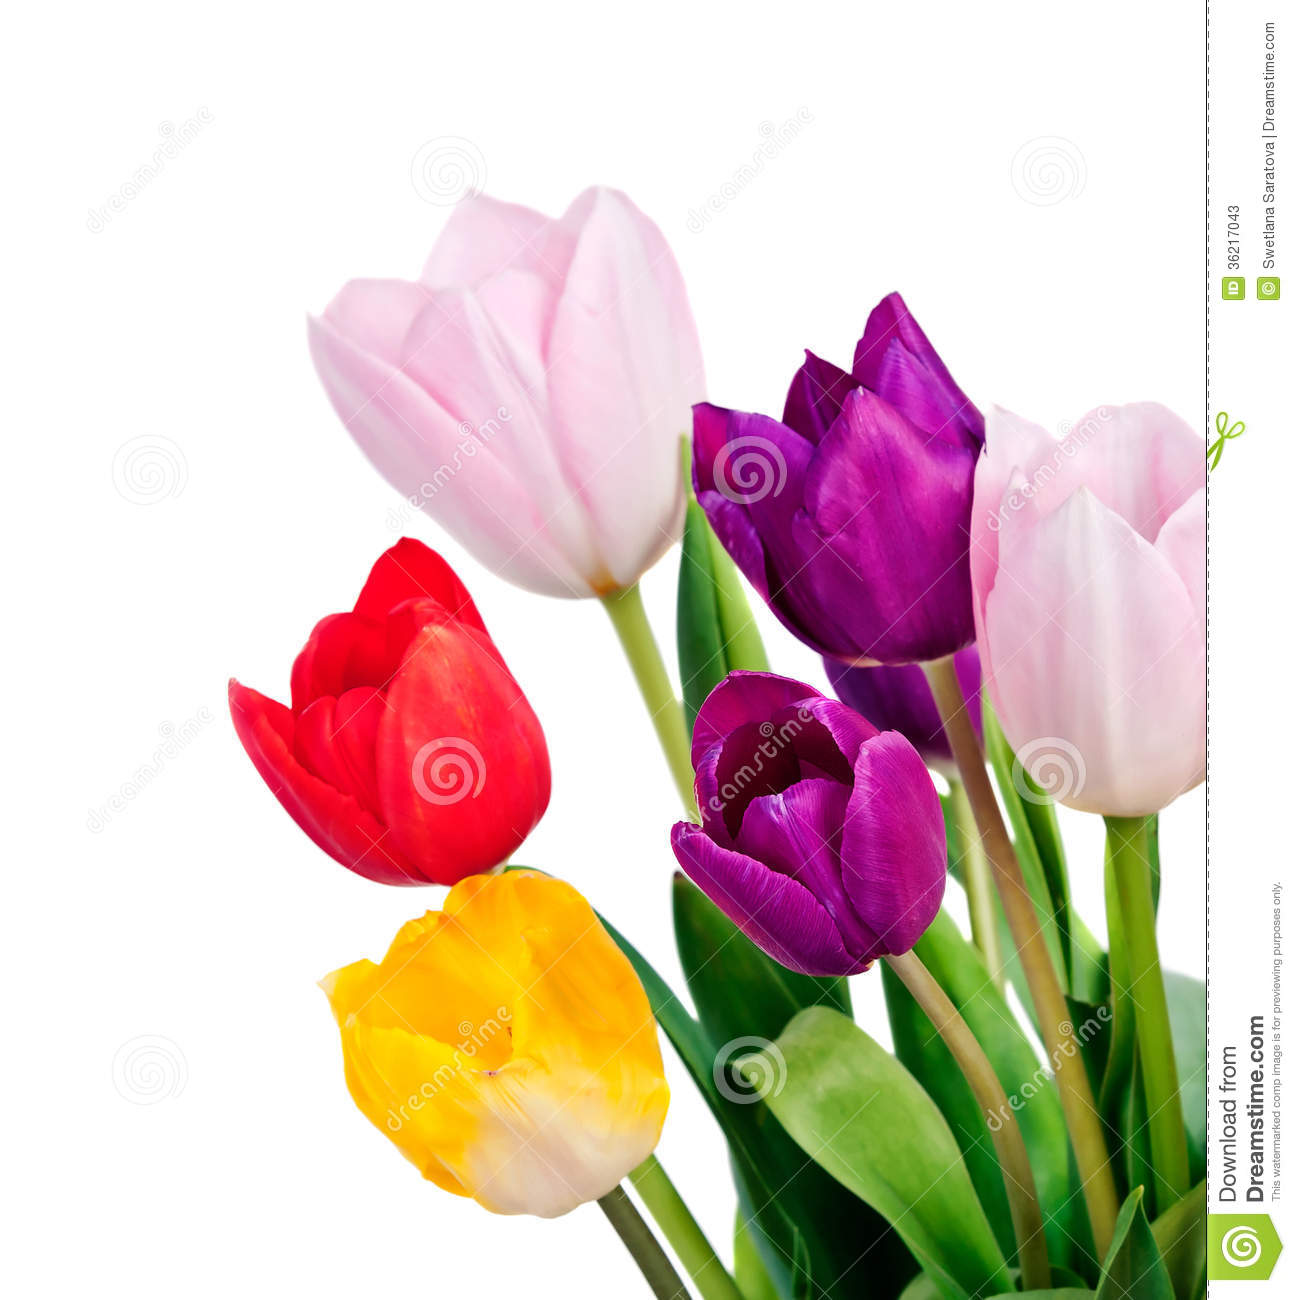 Spring tulip flowers bunch stock image image of bloom 36217043 spring tulip flowers bunch mightylinksfo